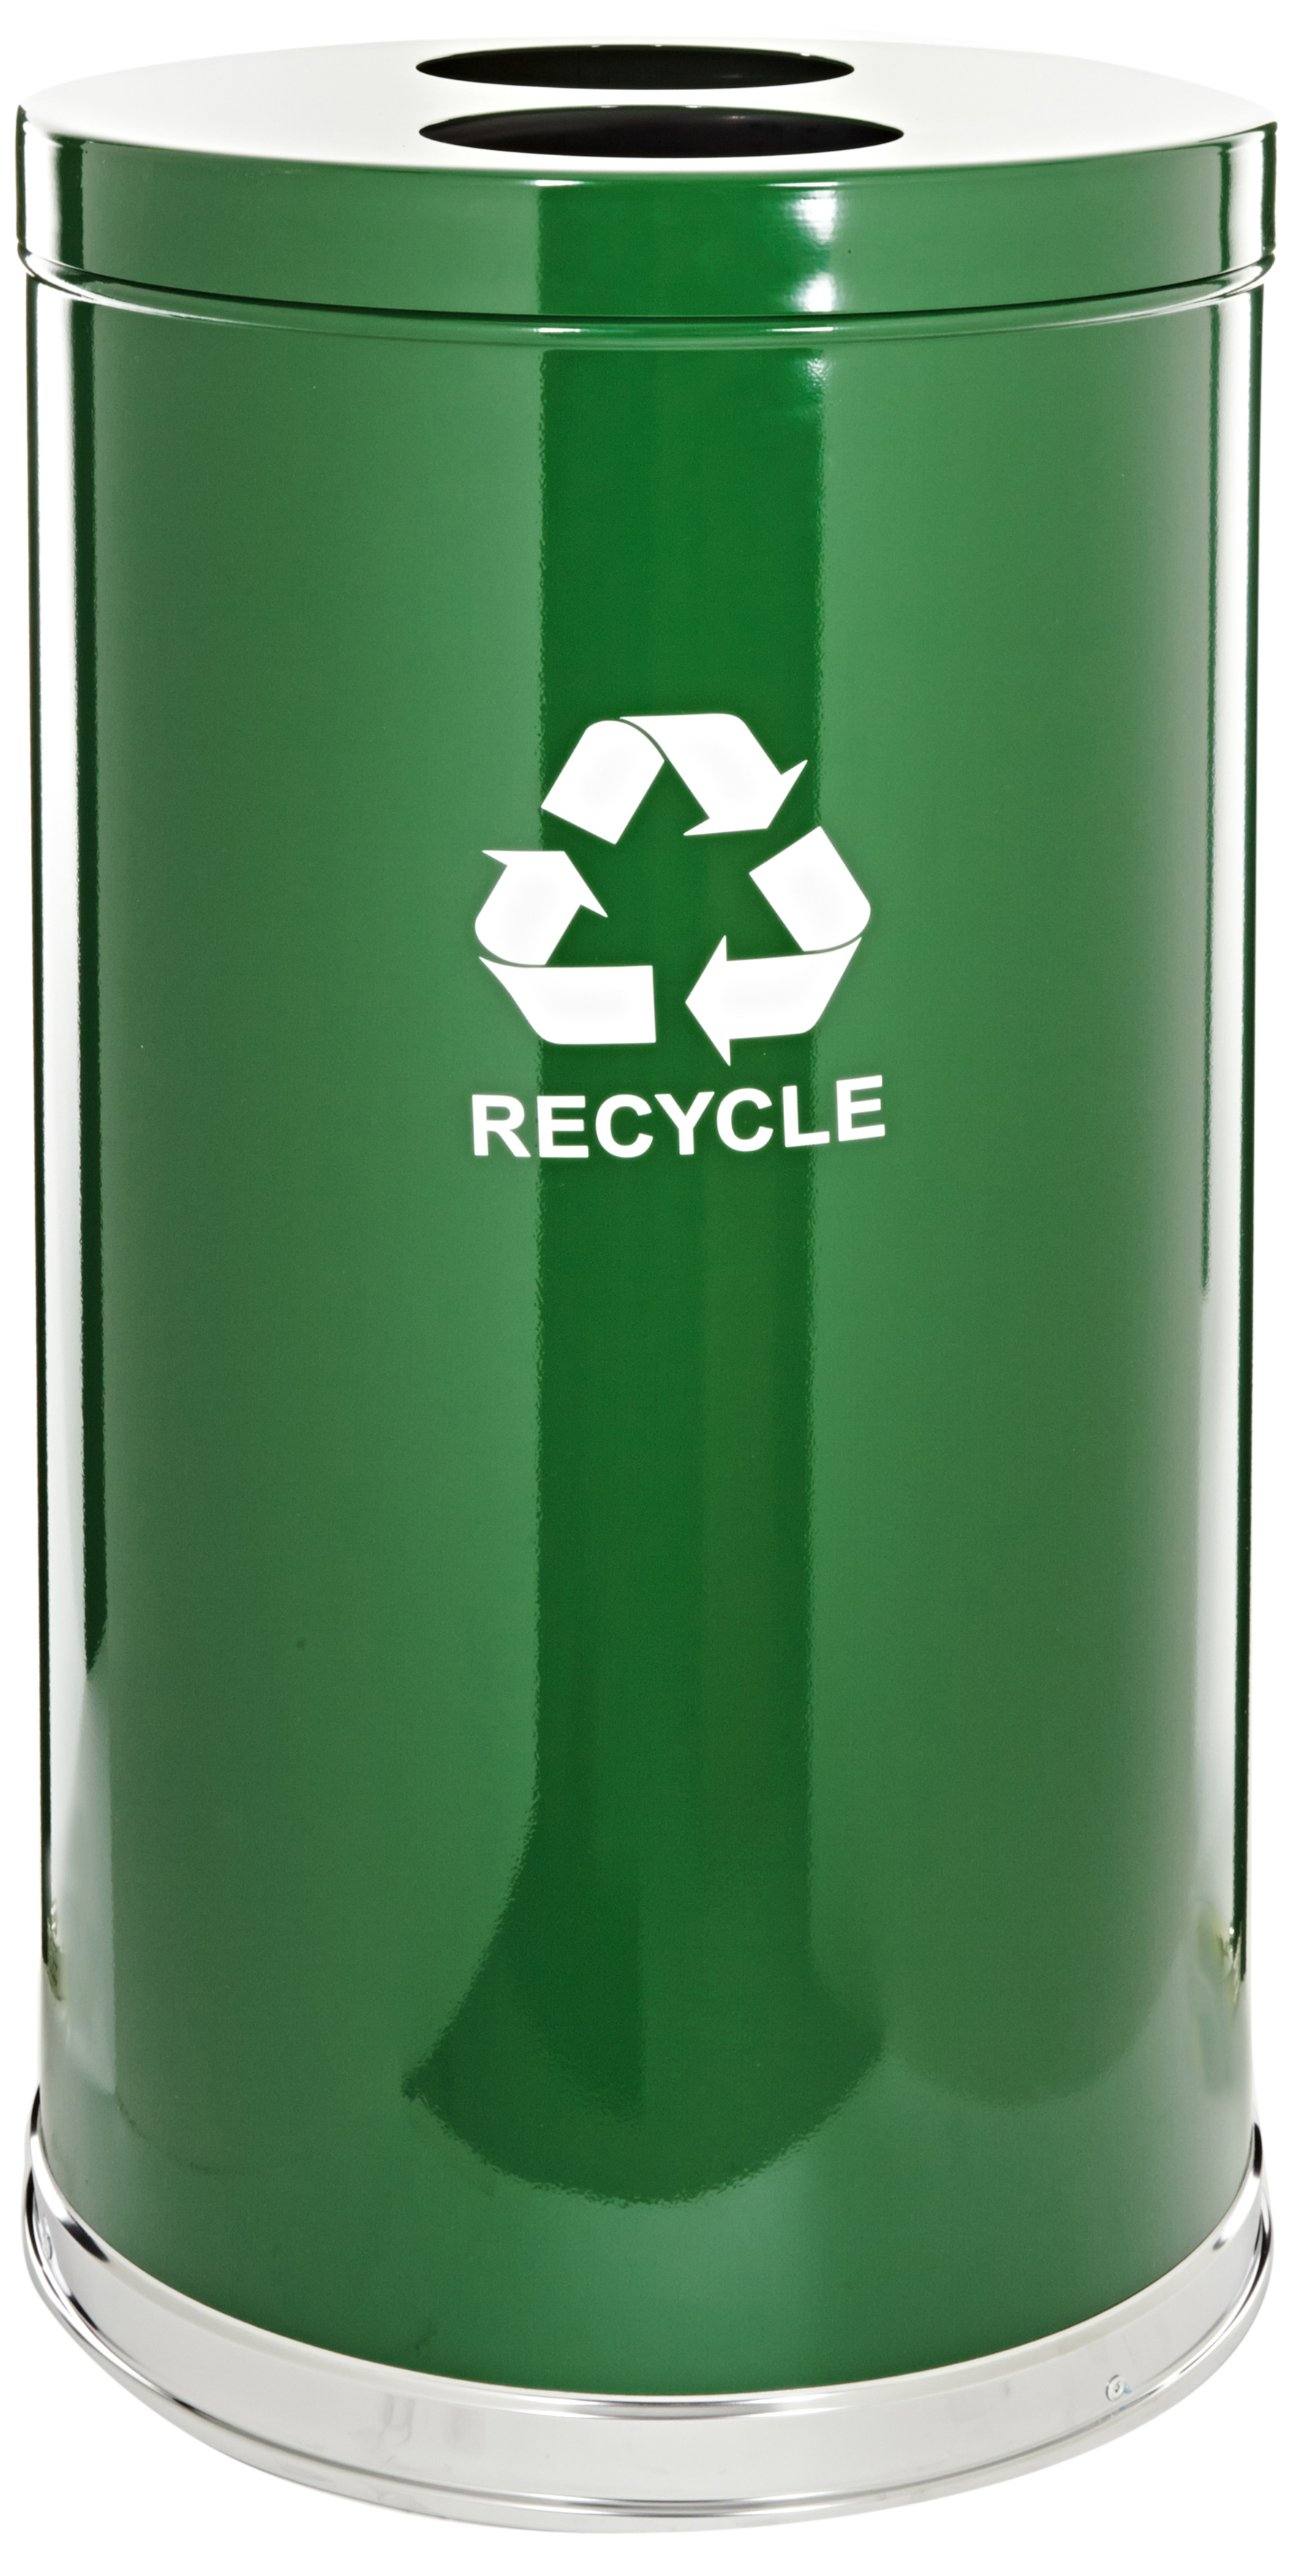 Witt Industries 18RTGN-2H Steel 36-Gallon 2 Opening Recycling Container with 2 Plastic Liners, Legend ''Recycle'', Round, 18'' Diameter x 33'' Height, Green